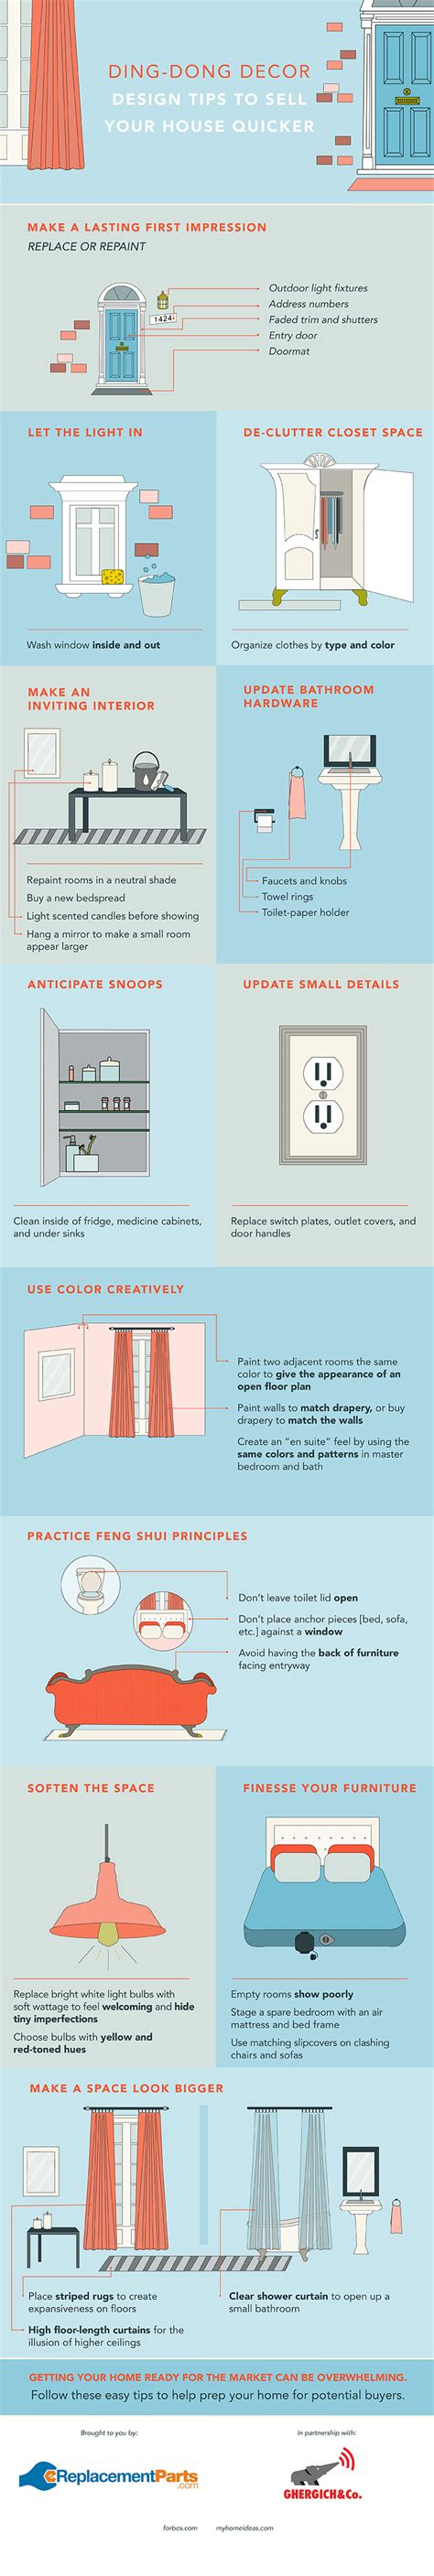 design tips for selling your home easy design tips to sell your house faster infographic